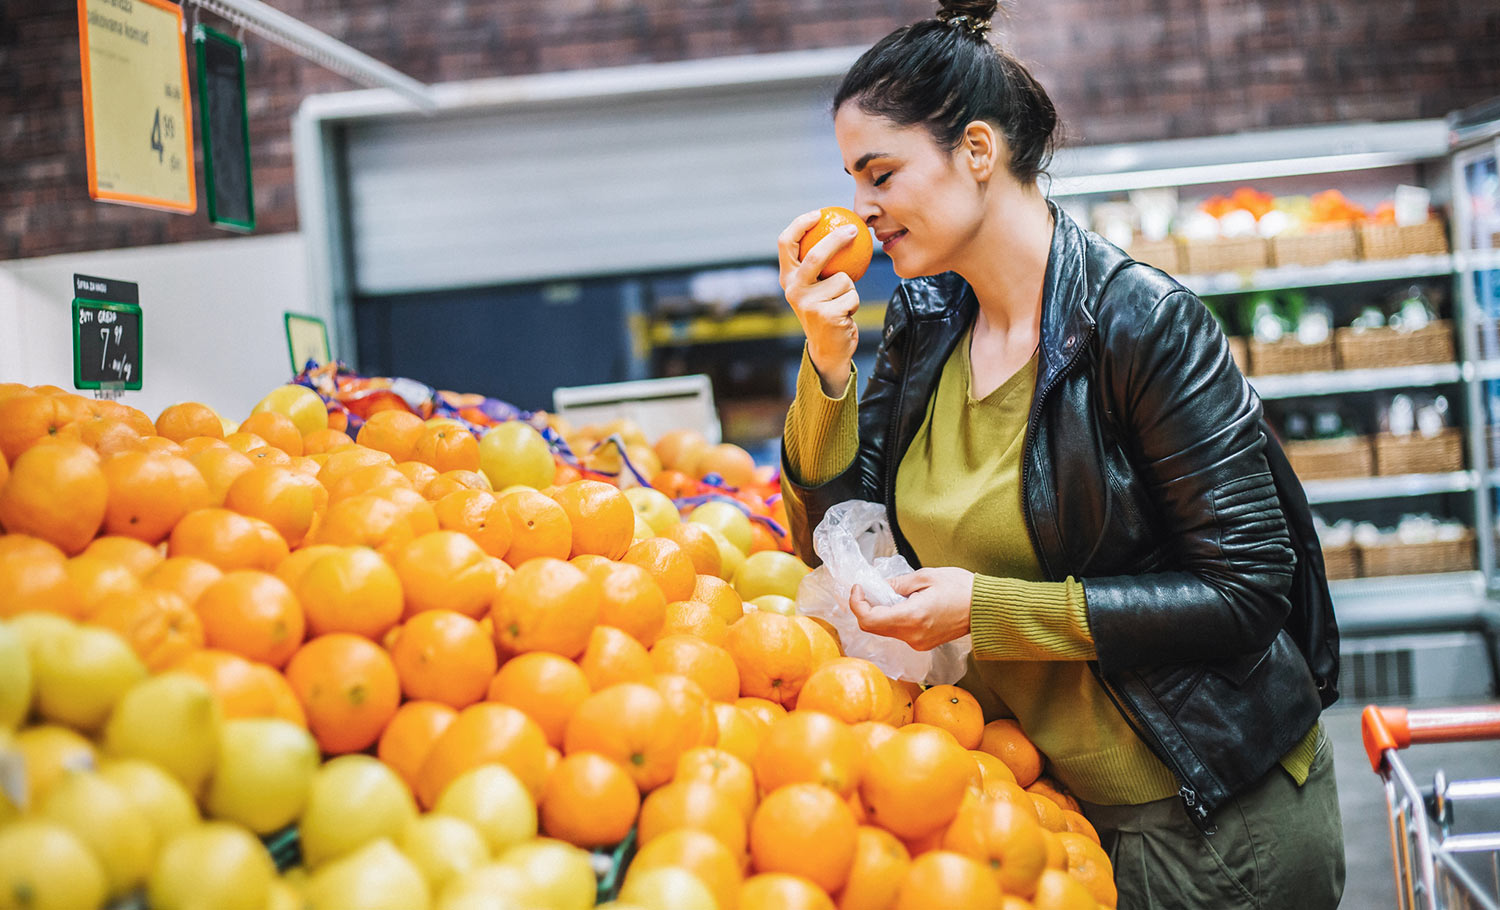 woman smelling oranges while shopping for groceries